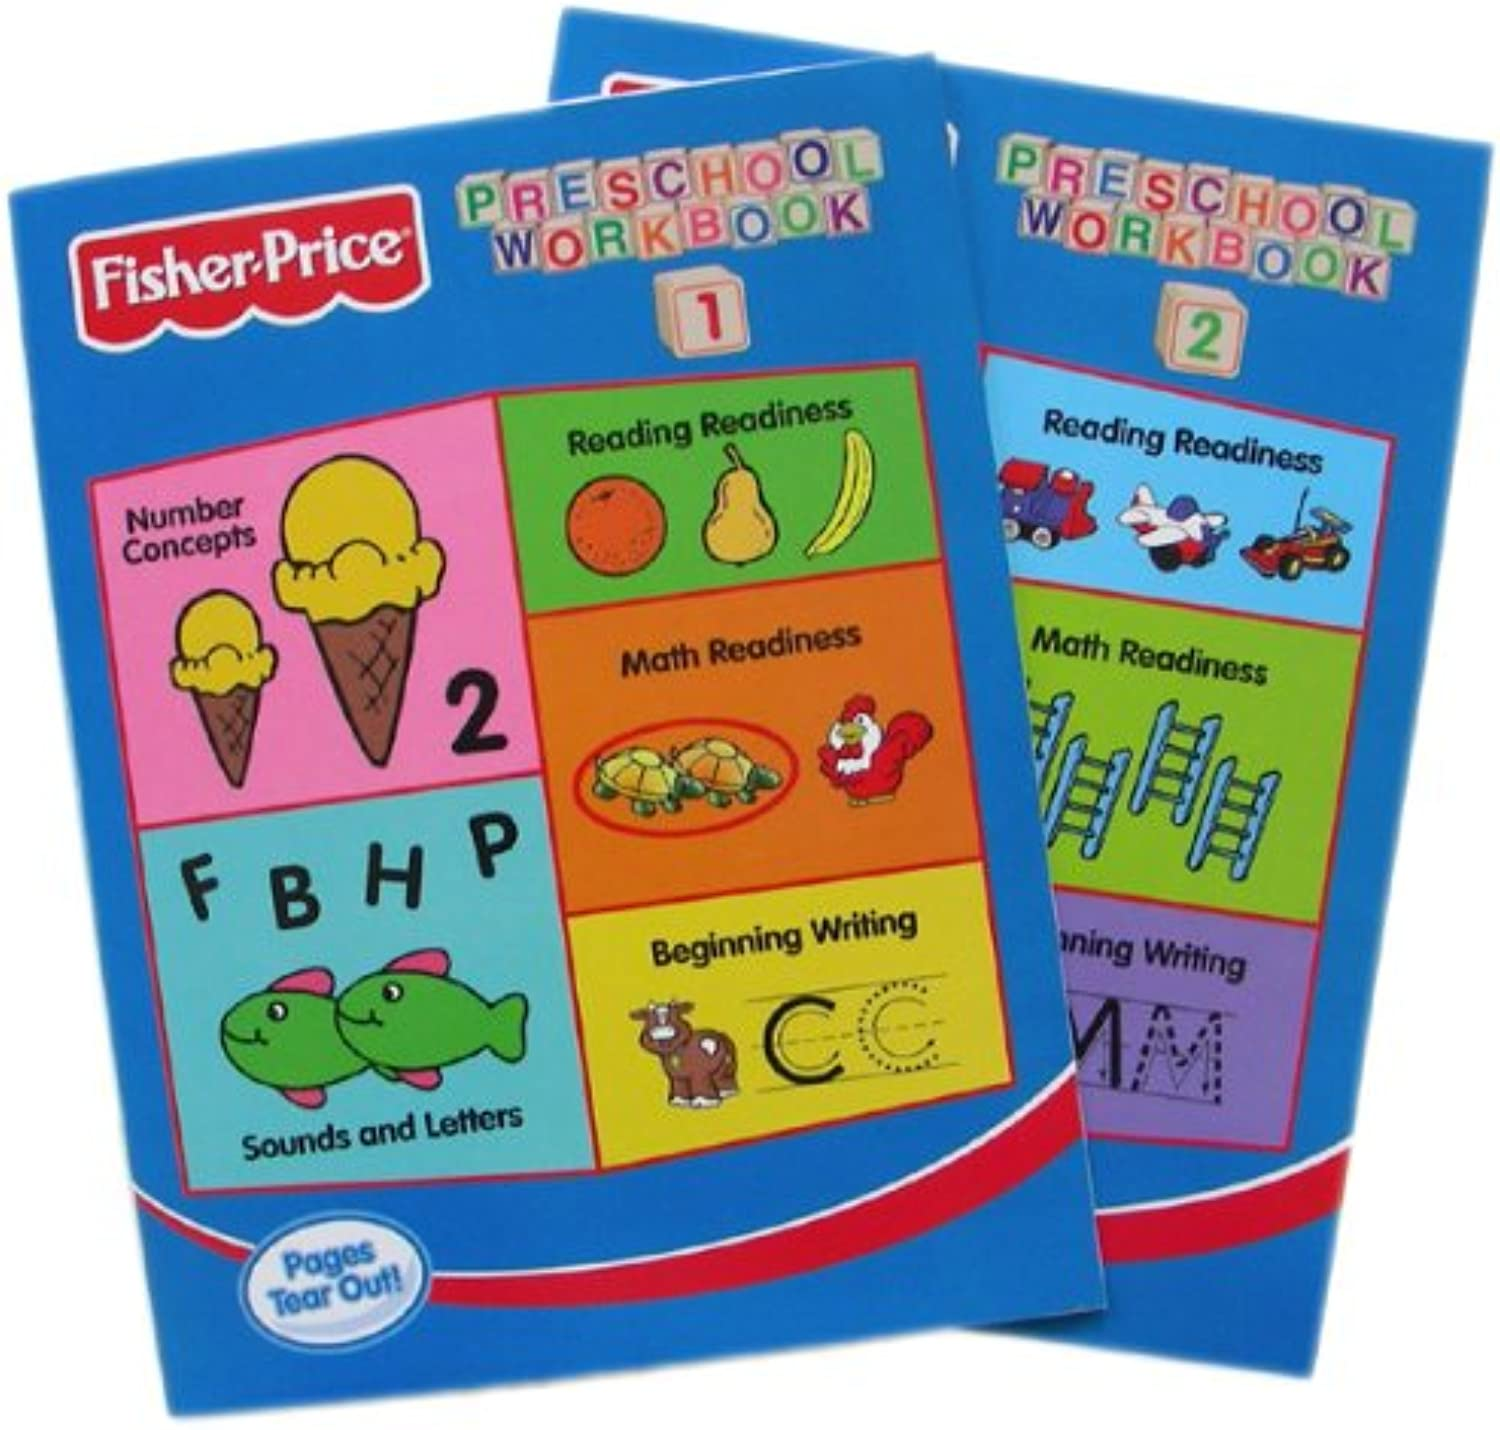 Fisher-Price Preschool Pre-school Workbooks Vol 1 & 2 - 2pc Set